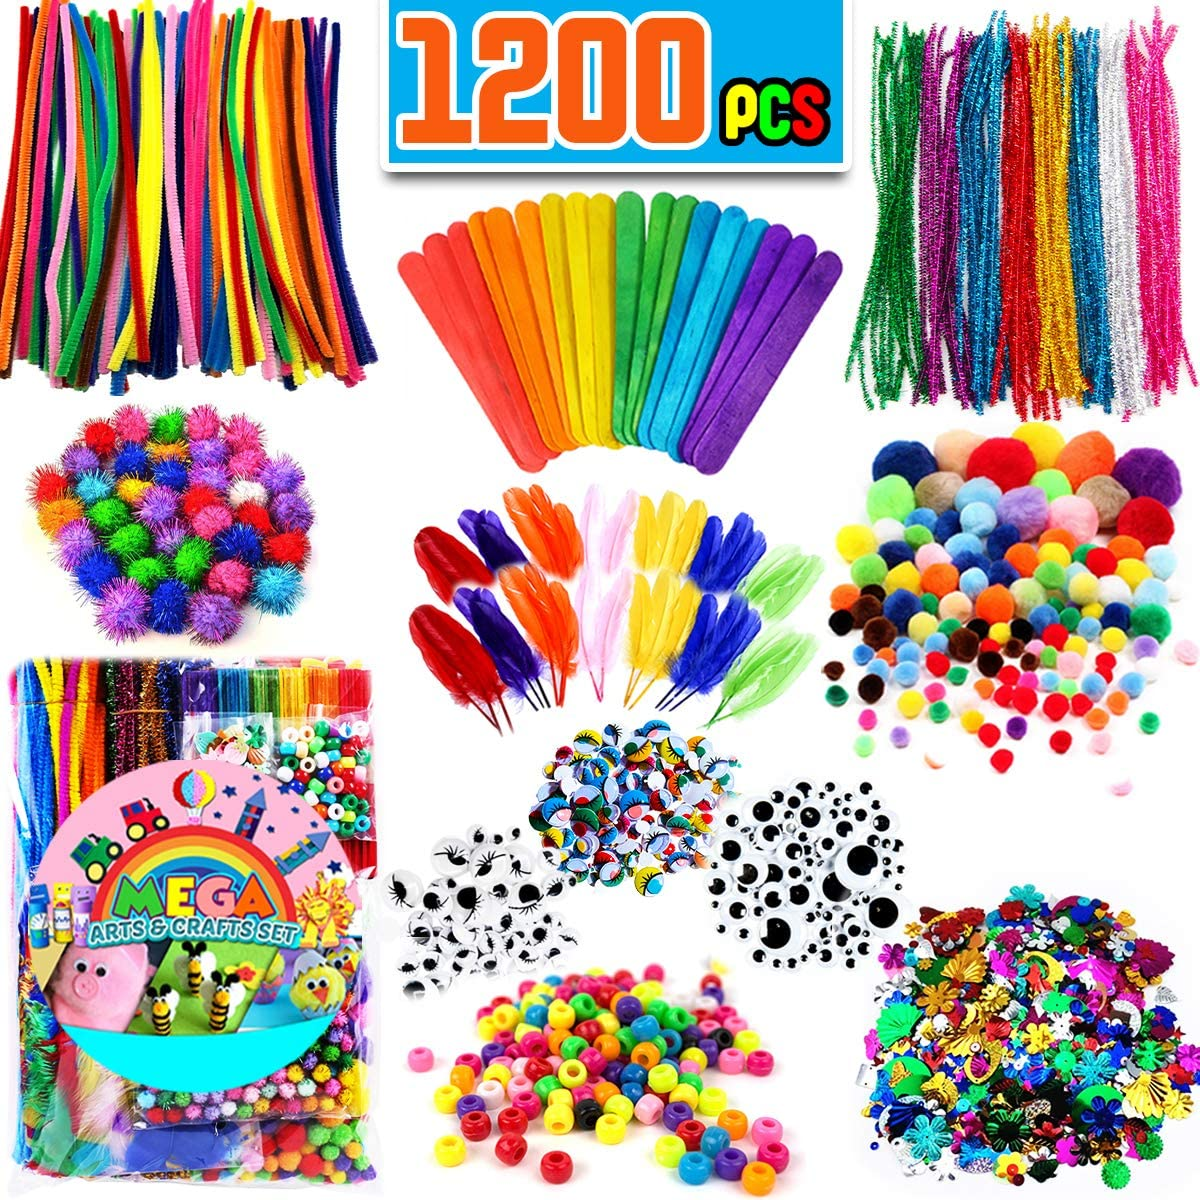 Amazon Com Funzbo Arts And Crafts Supplies For Kids Craft Art Supply Kit For Toddlers Age 4 5 6 7 8 9 All In One D I Y Crafting Collage Arts Set For Kids X Large Toys Games